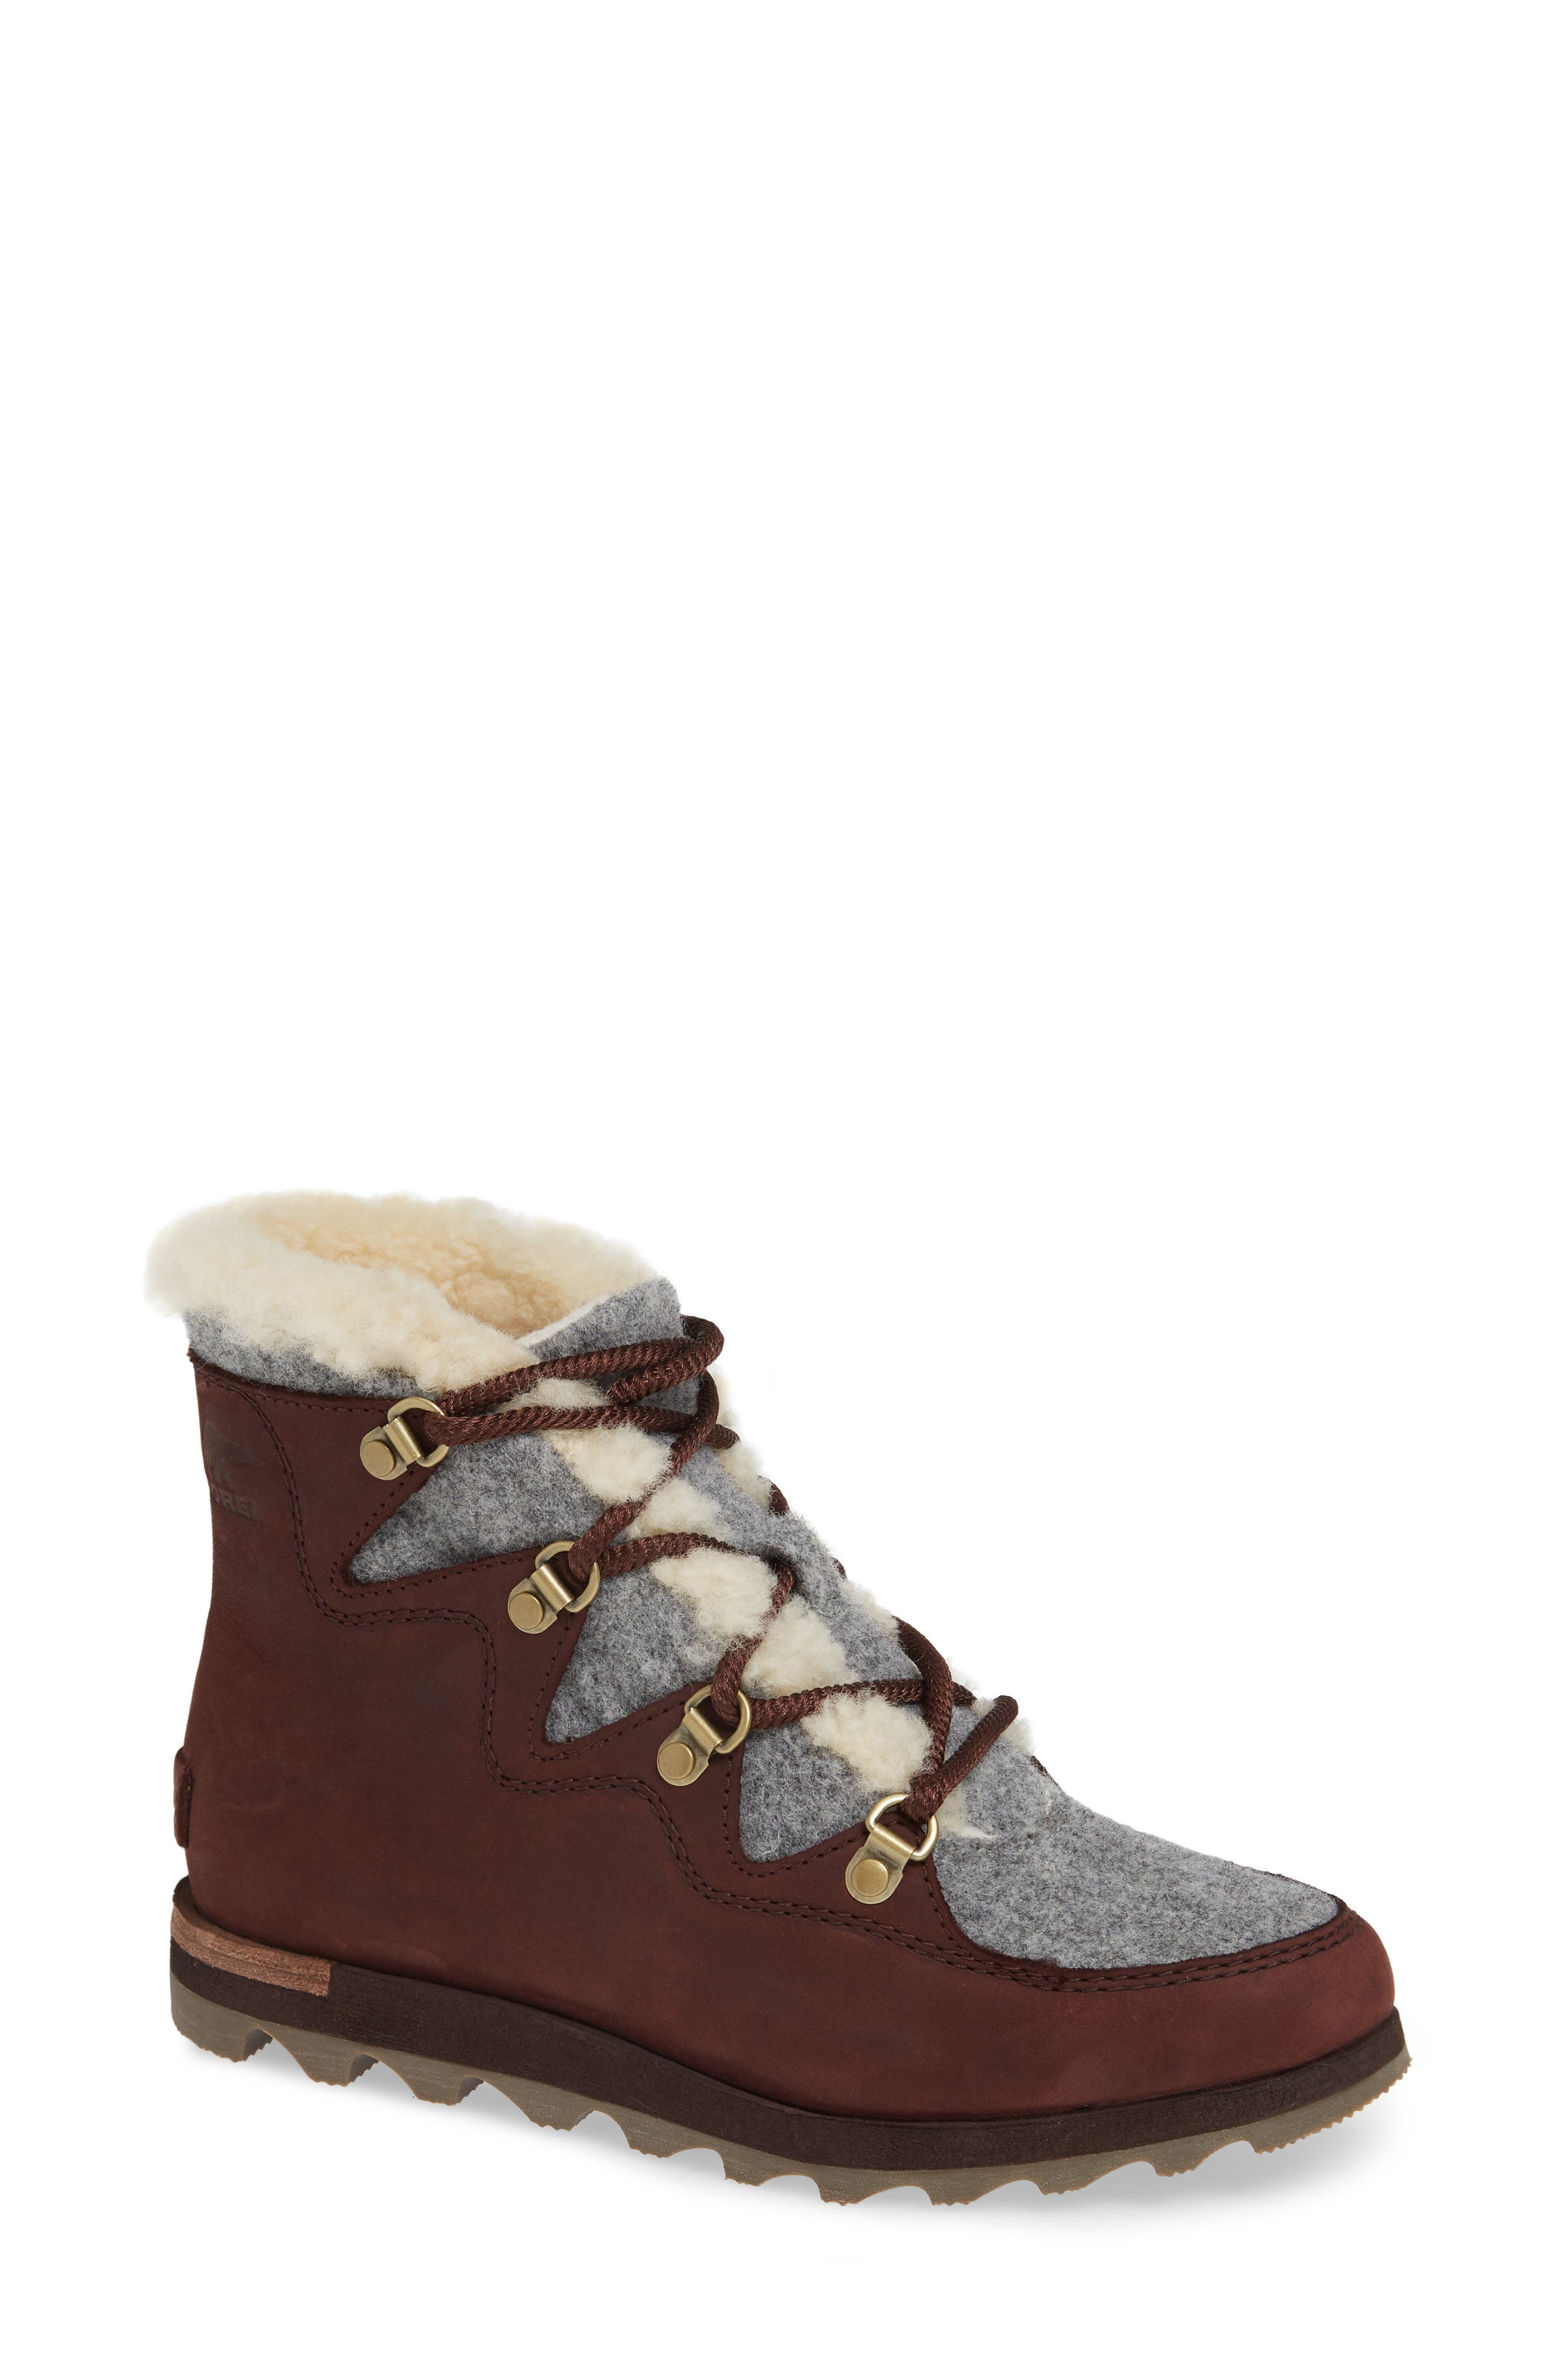 Sneakchic Alpine Holiday Waterproof Bootie,                         Main,                         color, CATTAIL/ GUM